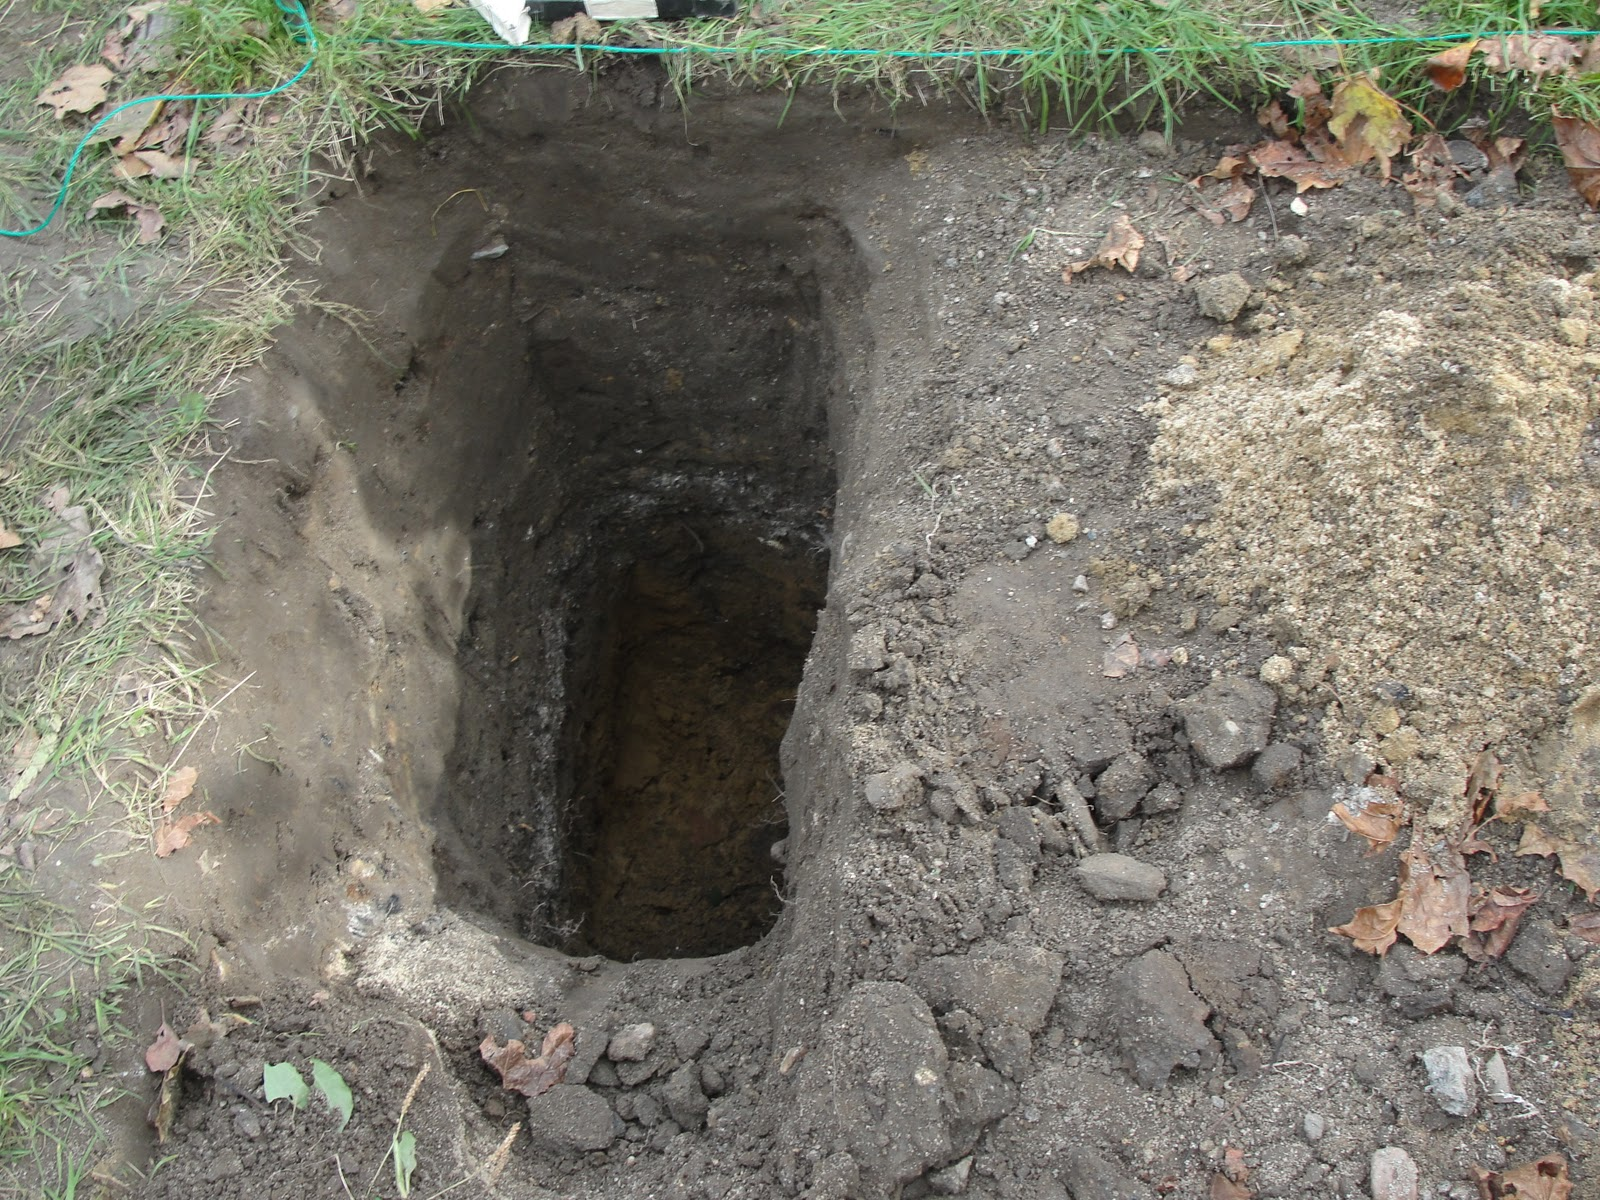 ok so back to the hole in my backyard